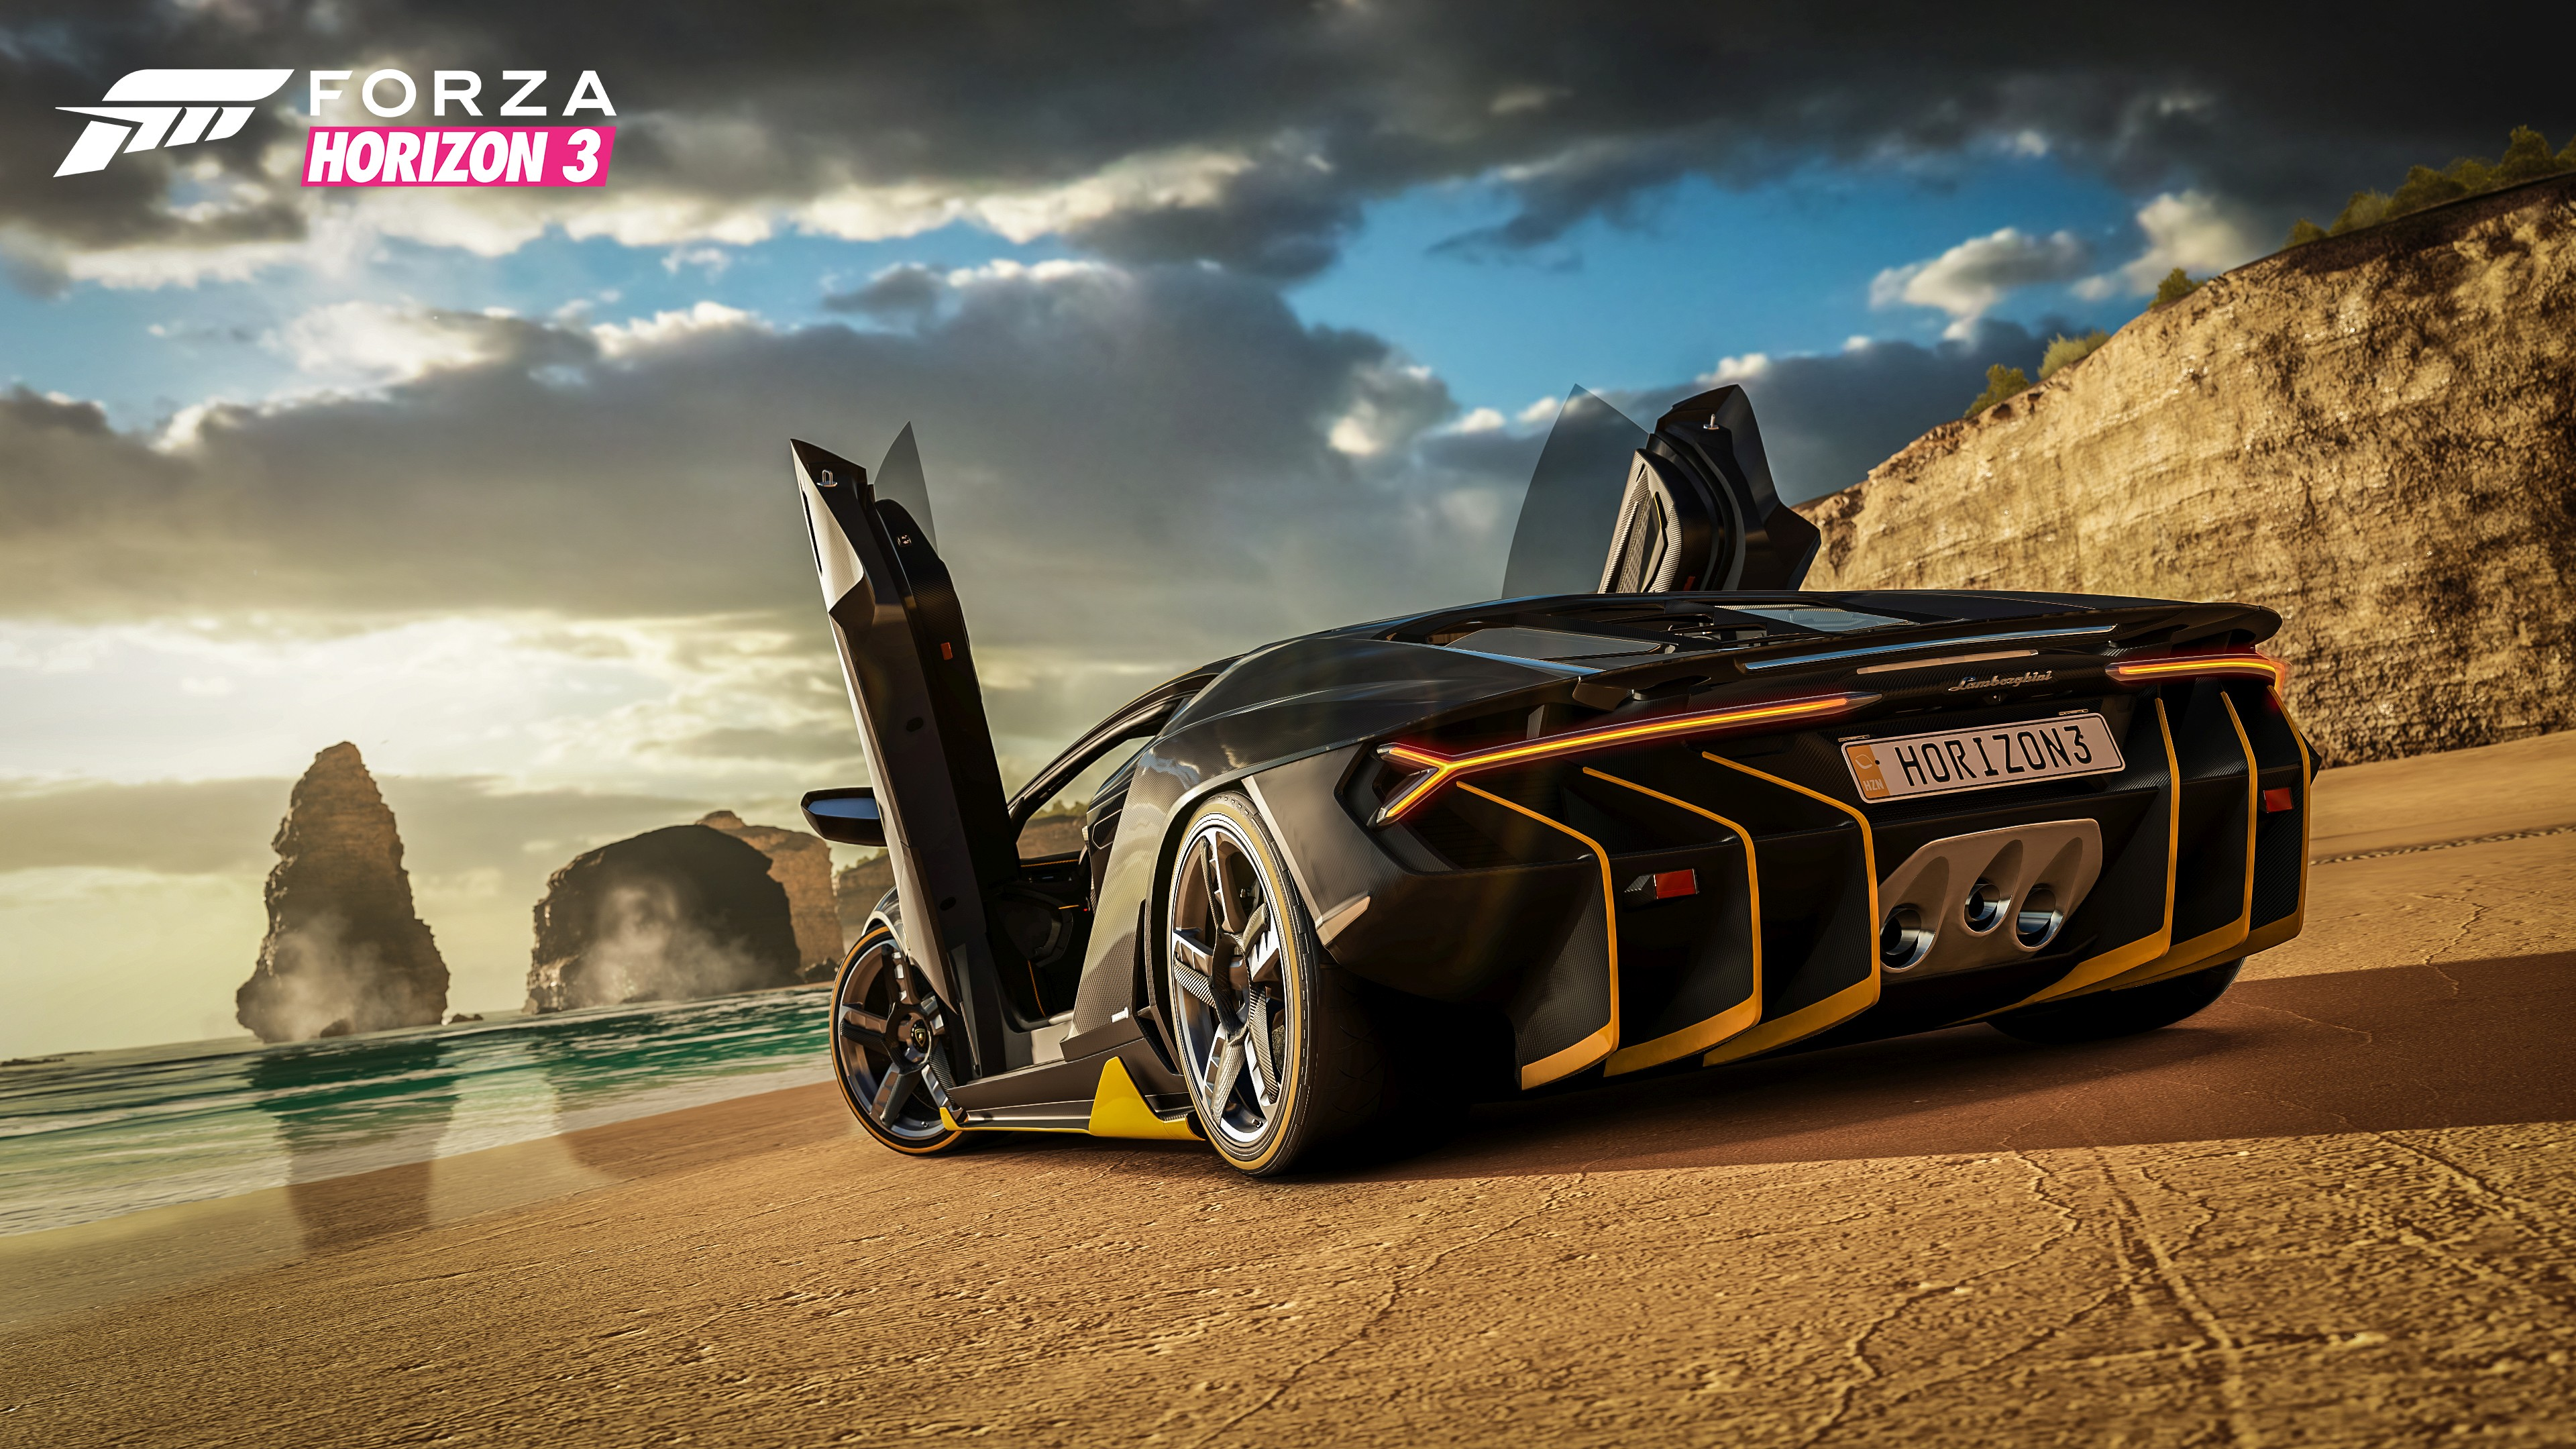 forza horizon 3 lamborghini 1536010700 - Forza Horizon 3 Lamborghini - xbox games wallpapers, racing wallpapers, ps games wallpapers, pc games wallpapers, lamborghini wallpapers, games wallpapers, forza wallpapers, forza horizon 3 wallpapers, cars wallpapers